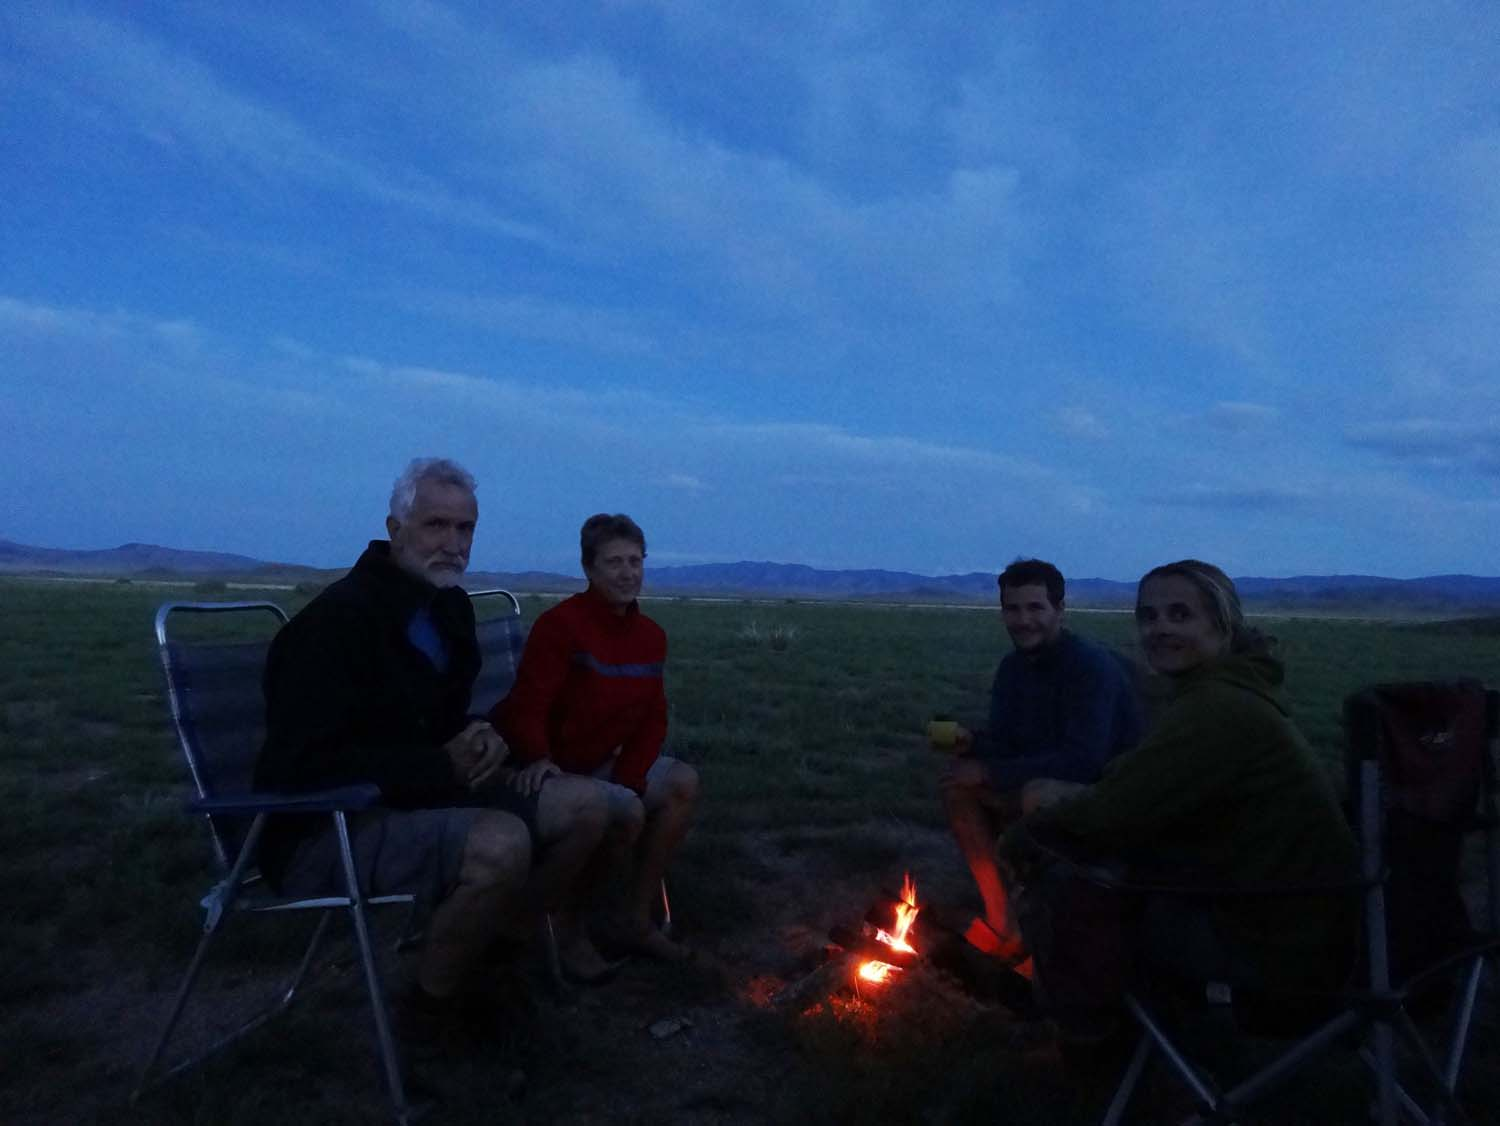 we catch up with Guy, Cheryl, Miles and Marina in the middle of nowhere and enjoy stories by the camp fire